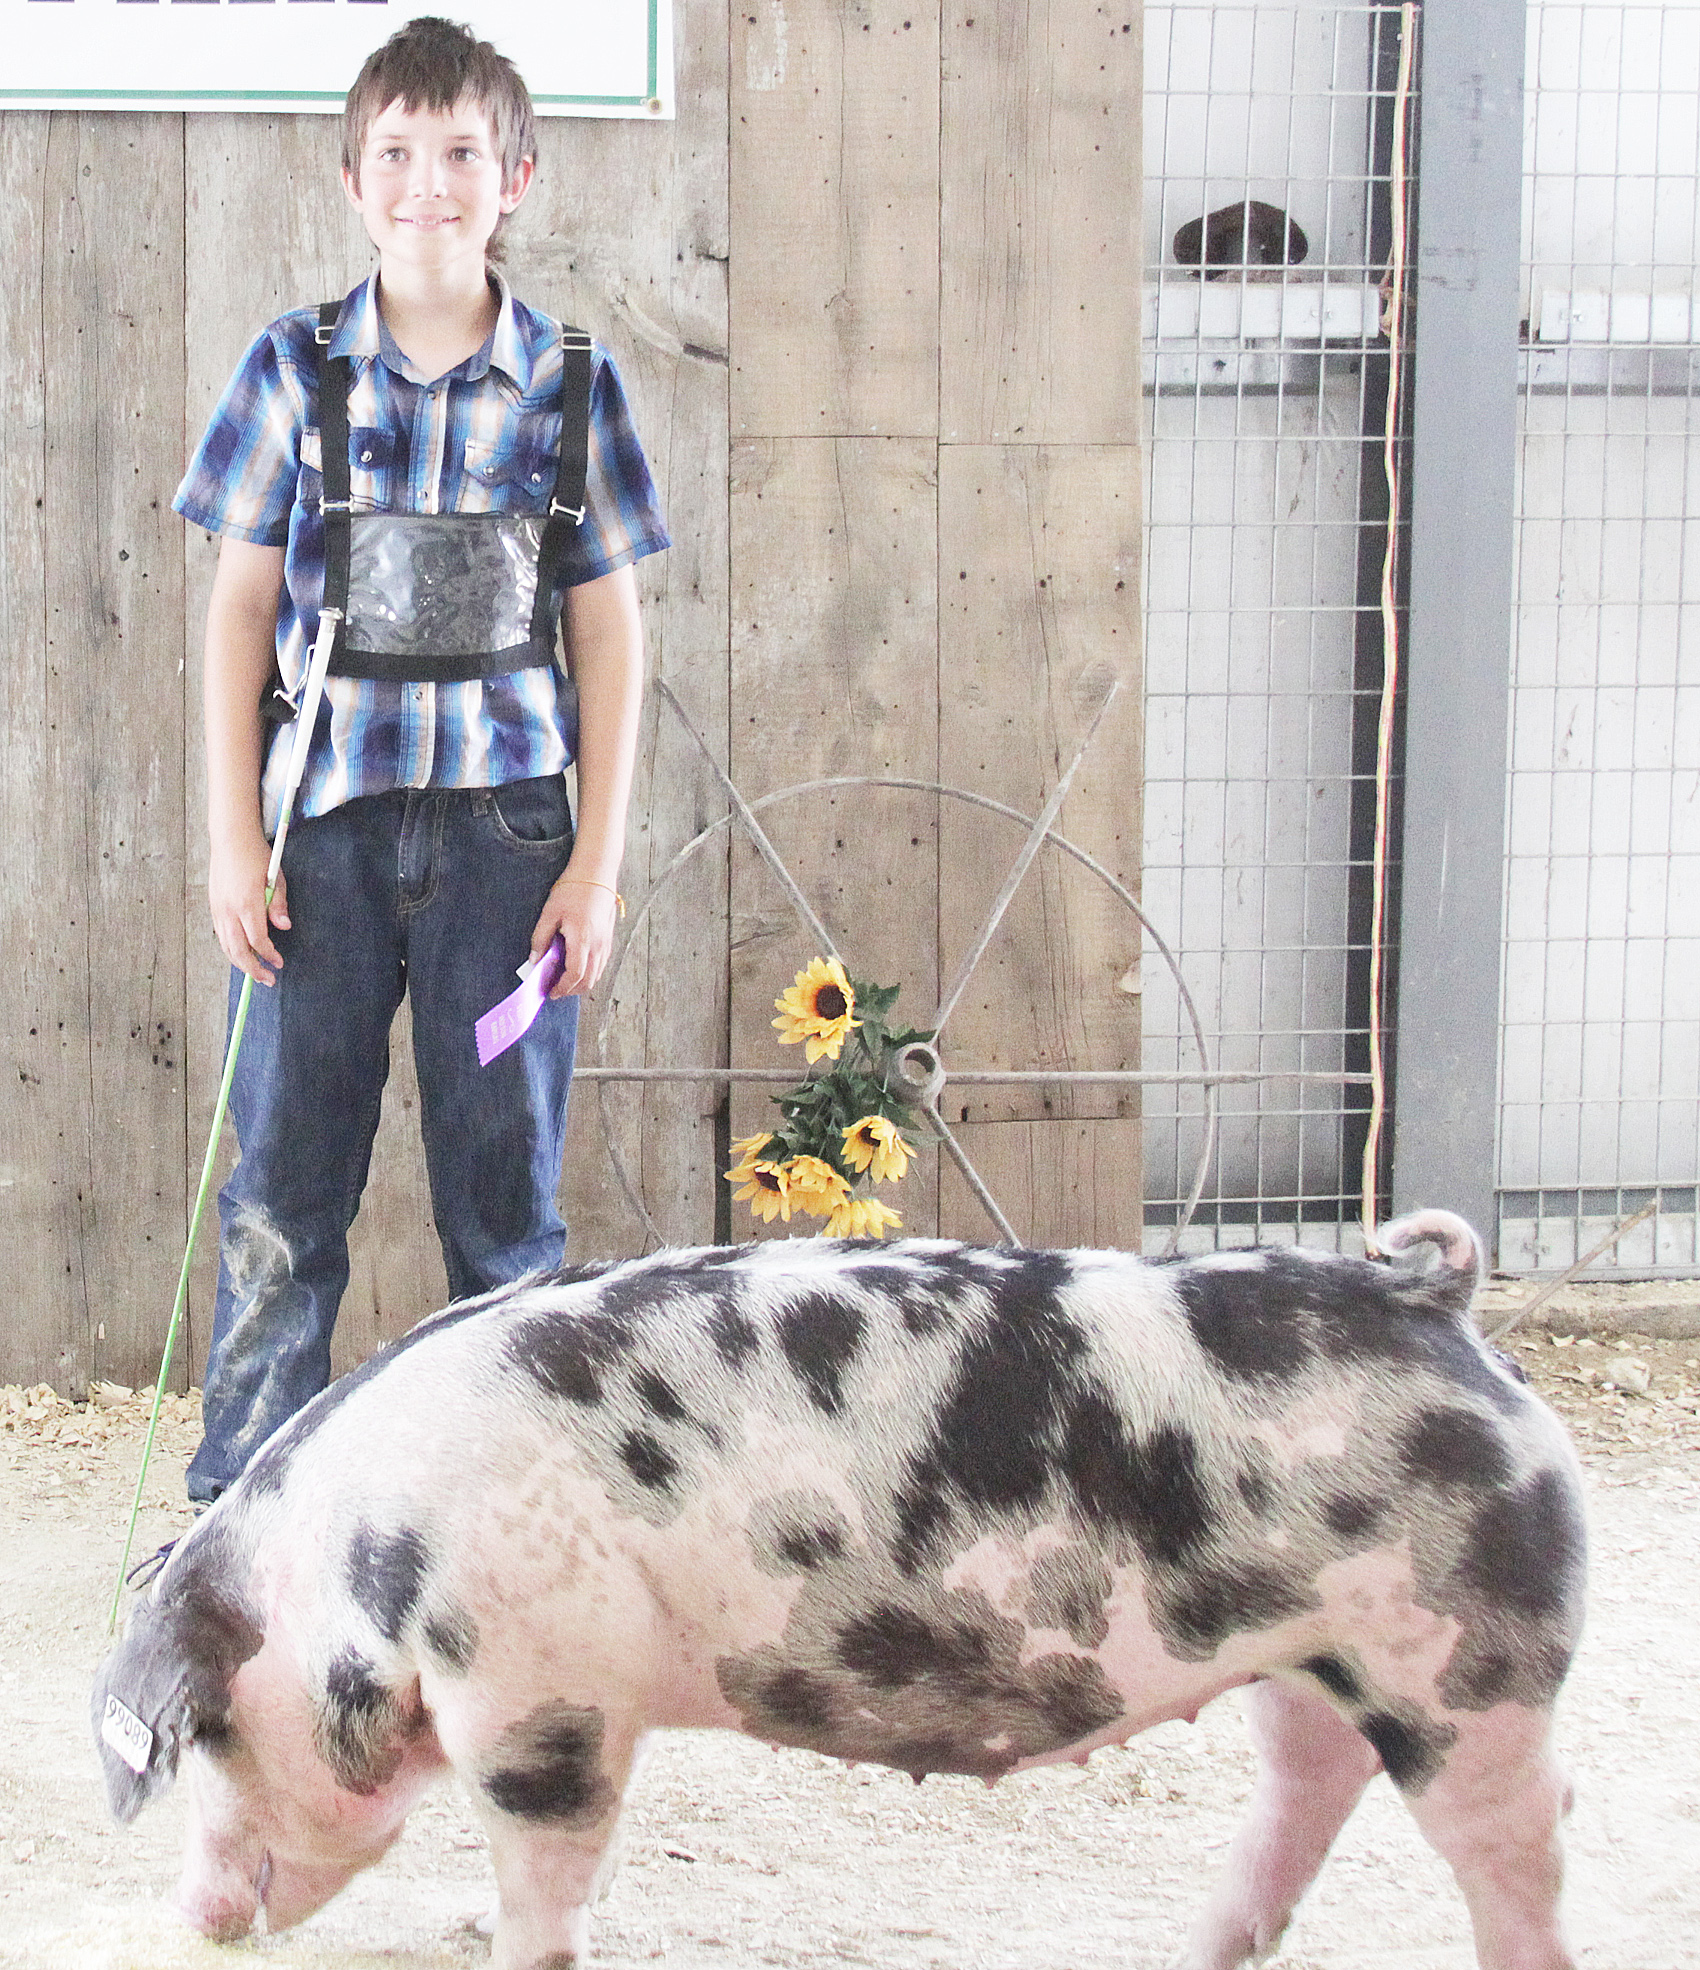 William Beauchamp of the Ontario Busy Bees 4-H Club showed the Champion Spot breeding gilt at the 2020 Jackson County Fair.